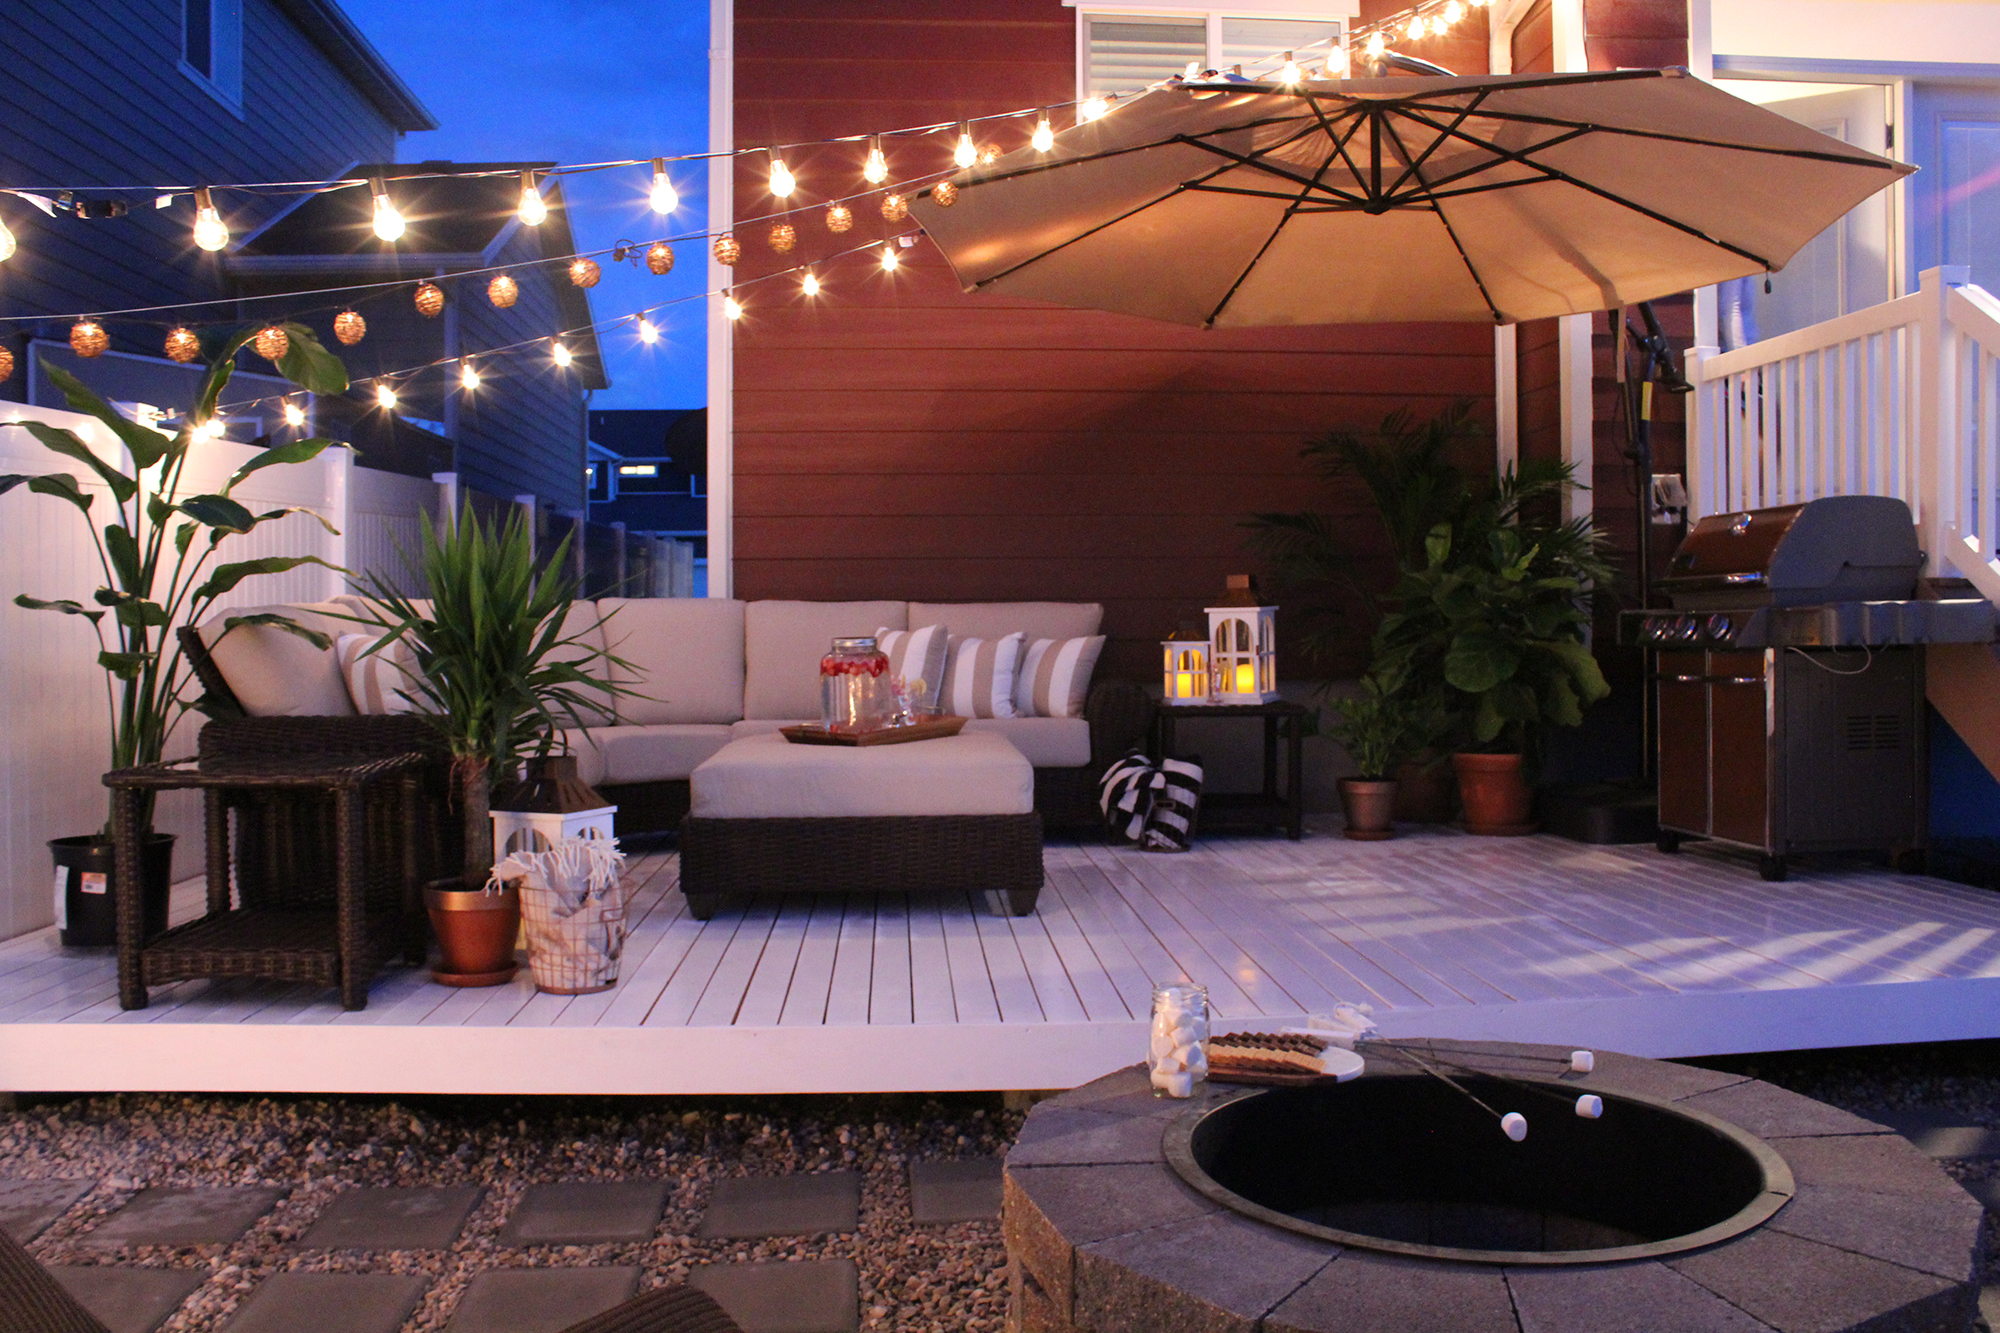 Patio Set Featuring String Lights And LED Andles